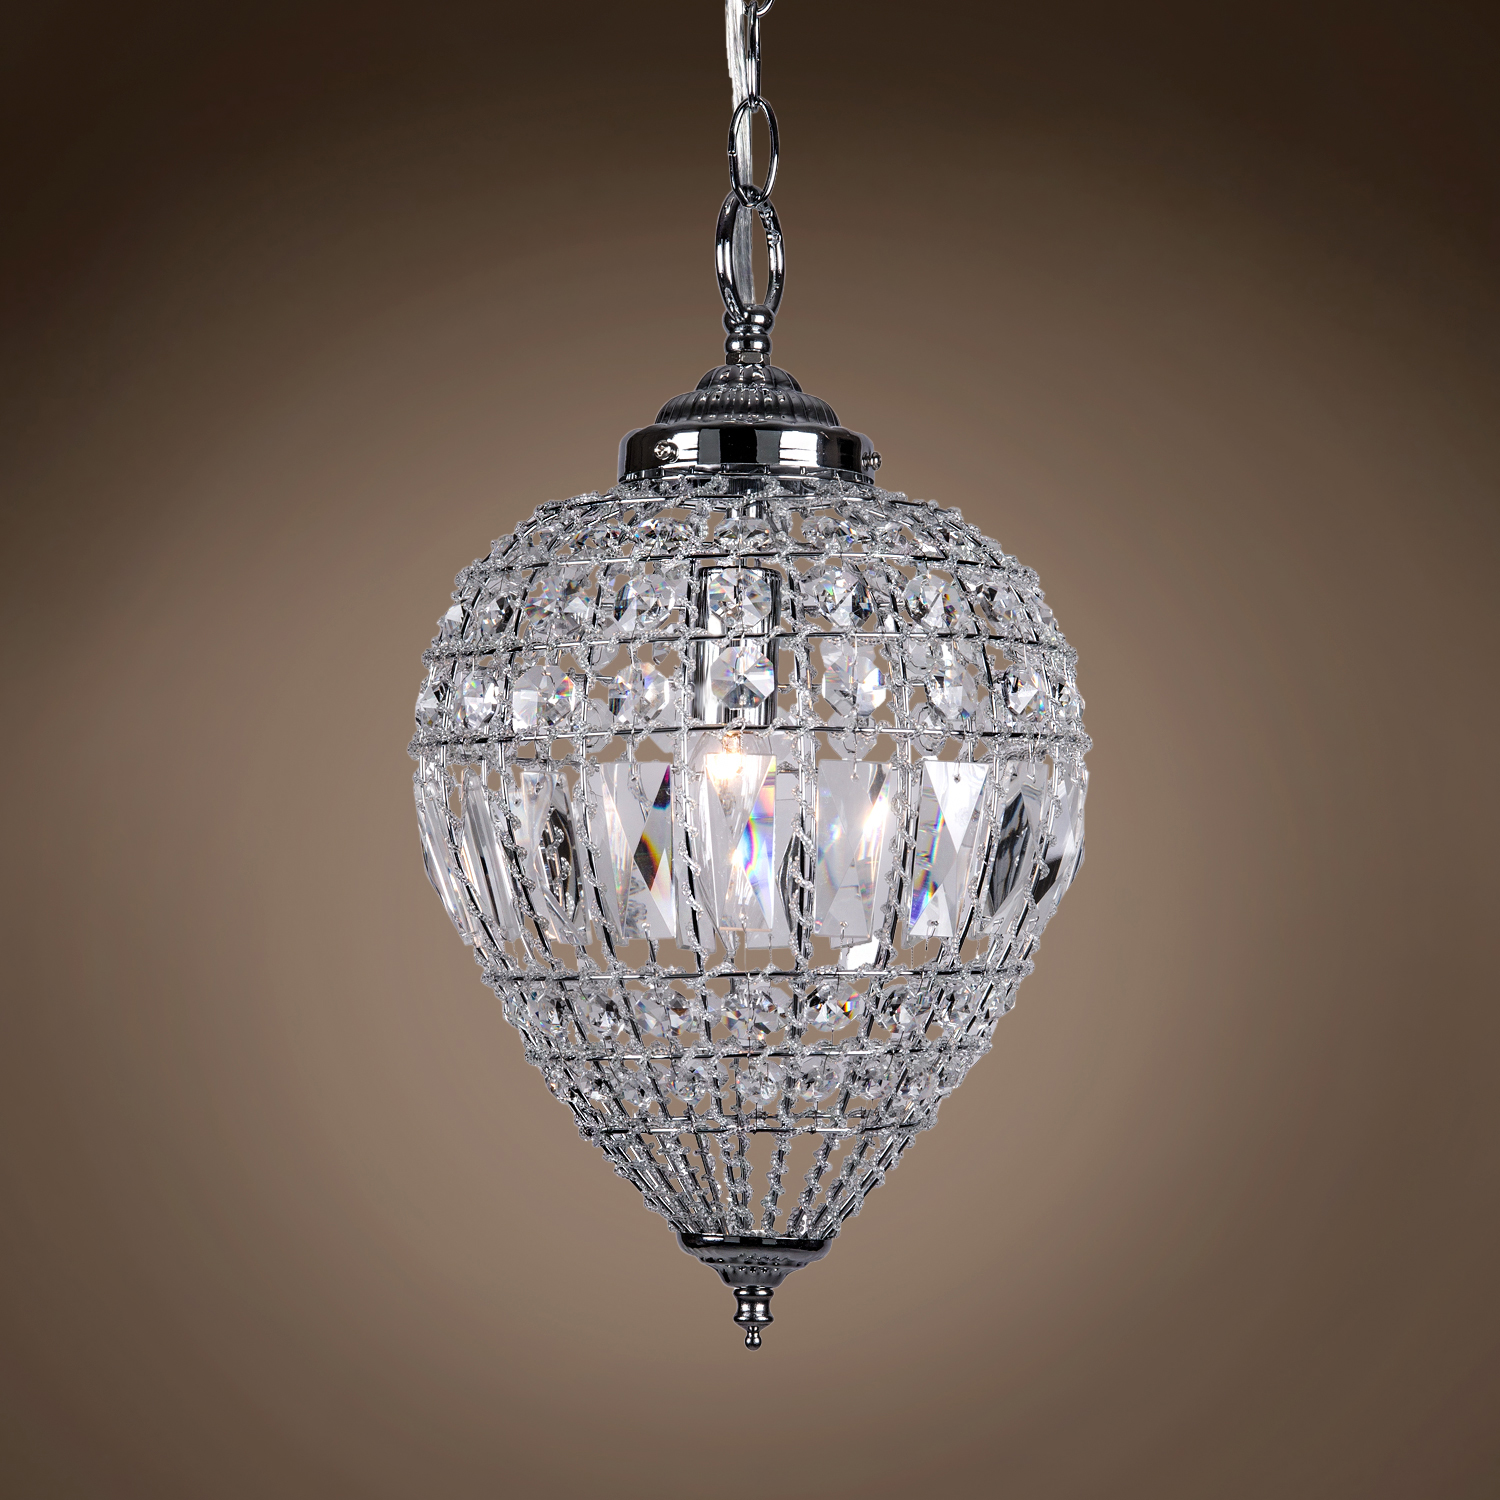 Joshua Marshal 7022 001 1 Light Beaded Crystal Mini